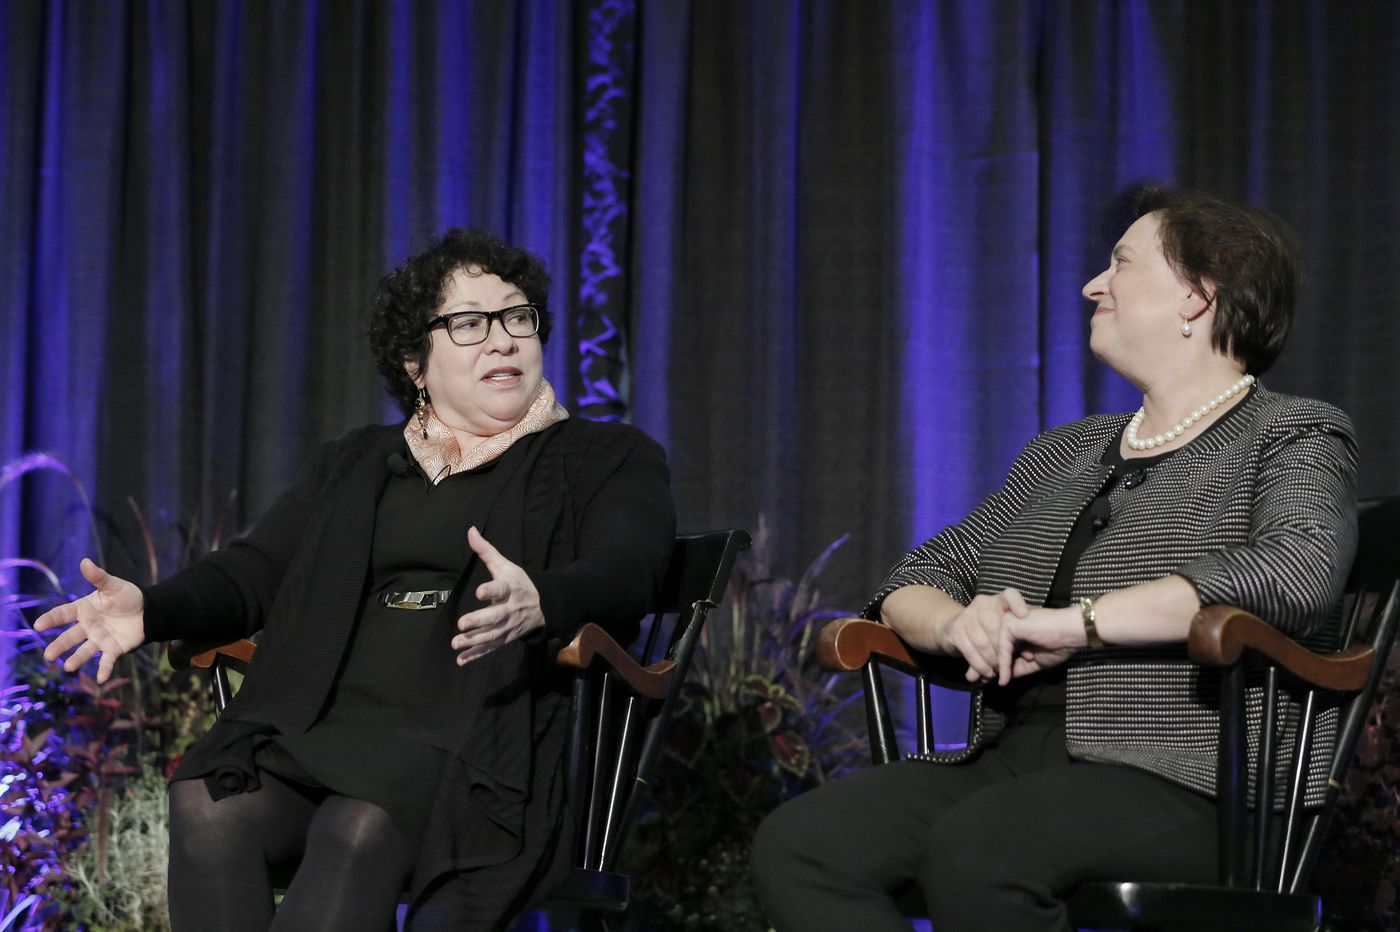 At Princeton event, Justices Kagan, Sotomayor avoid talking about Kavanaugh but decry politicization of court